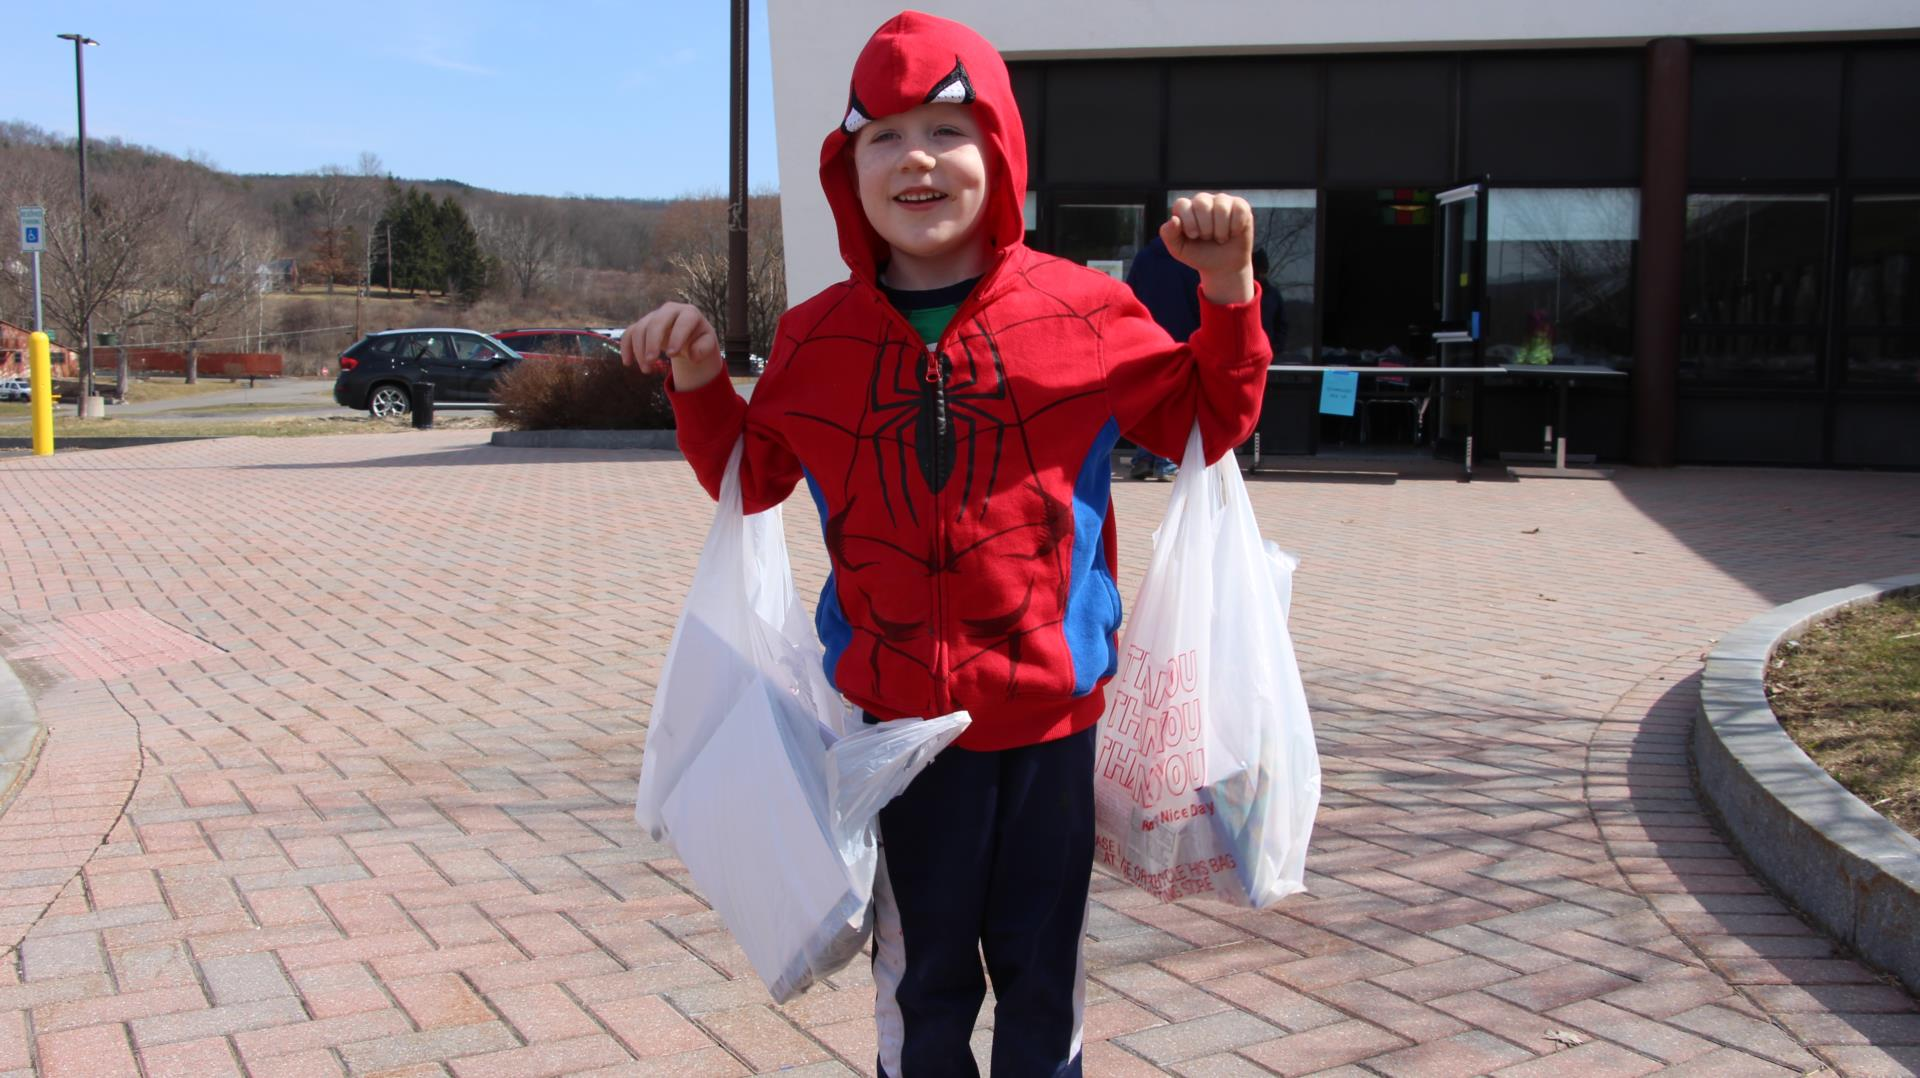 A young boy in a spiderman costume holding two bags